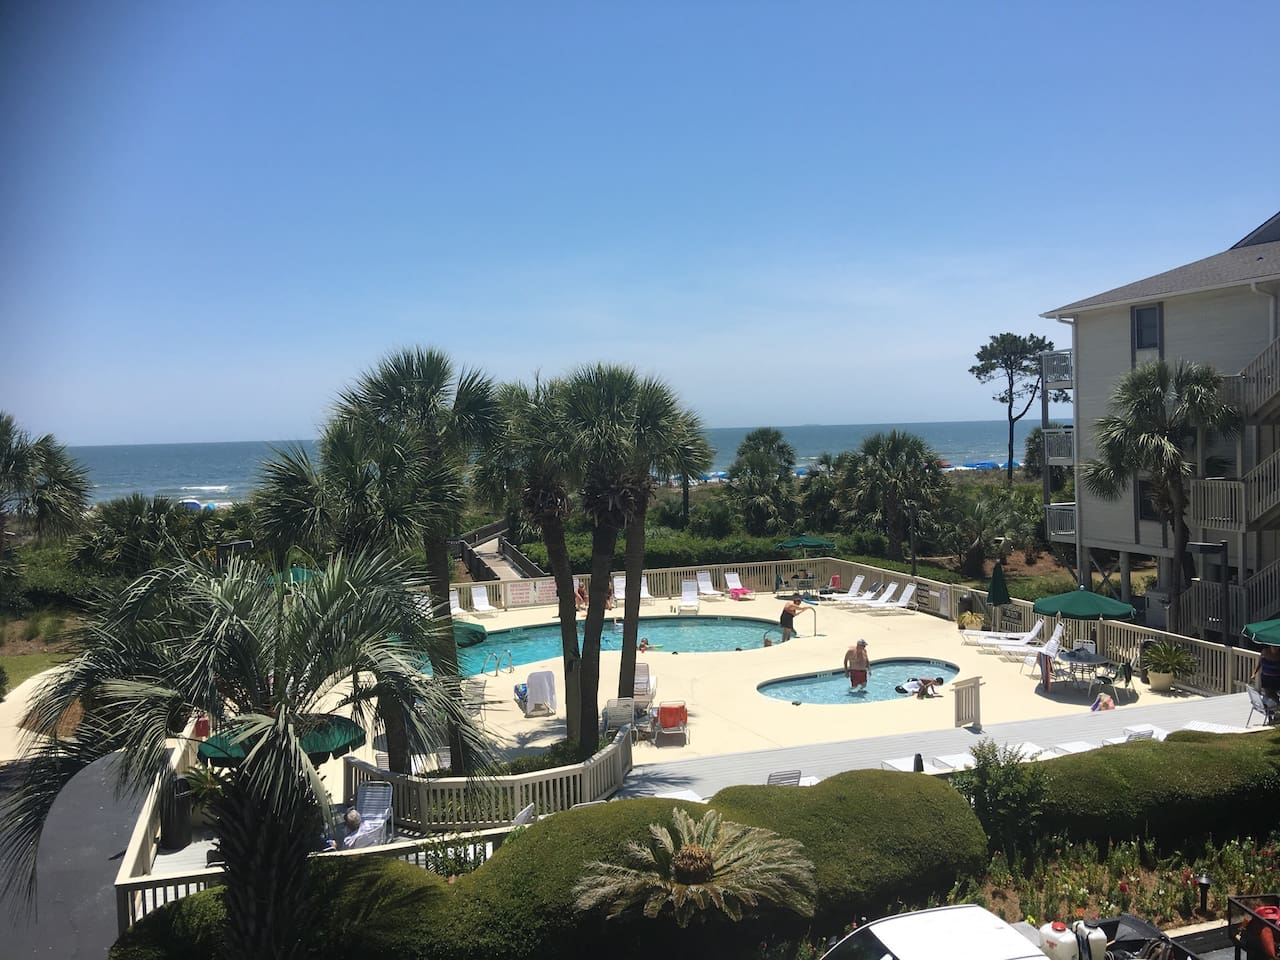 View from the Balcony - Ocean, Palm Trees and Heated Pool